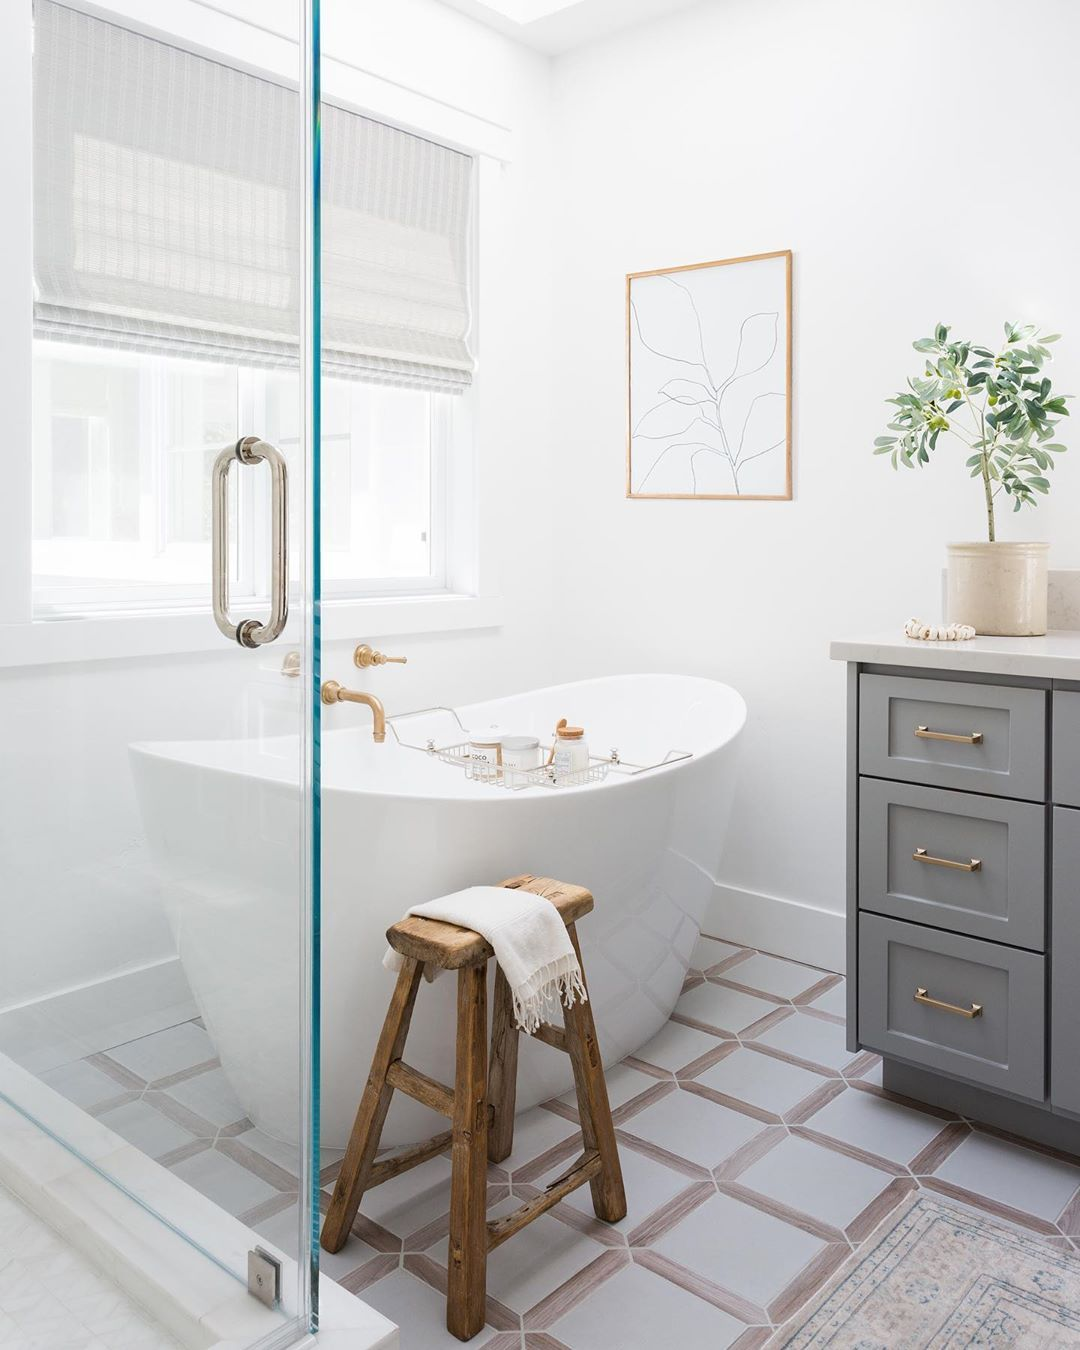 Eye For Pretty On Instagram You Guys Loved This Bathroom So Here Are Some More Angles How Many Of Us Wi In 2020 White Modern Kitchen Free Standing Tub White Kitchen